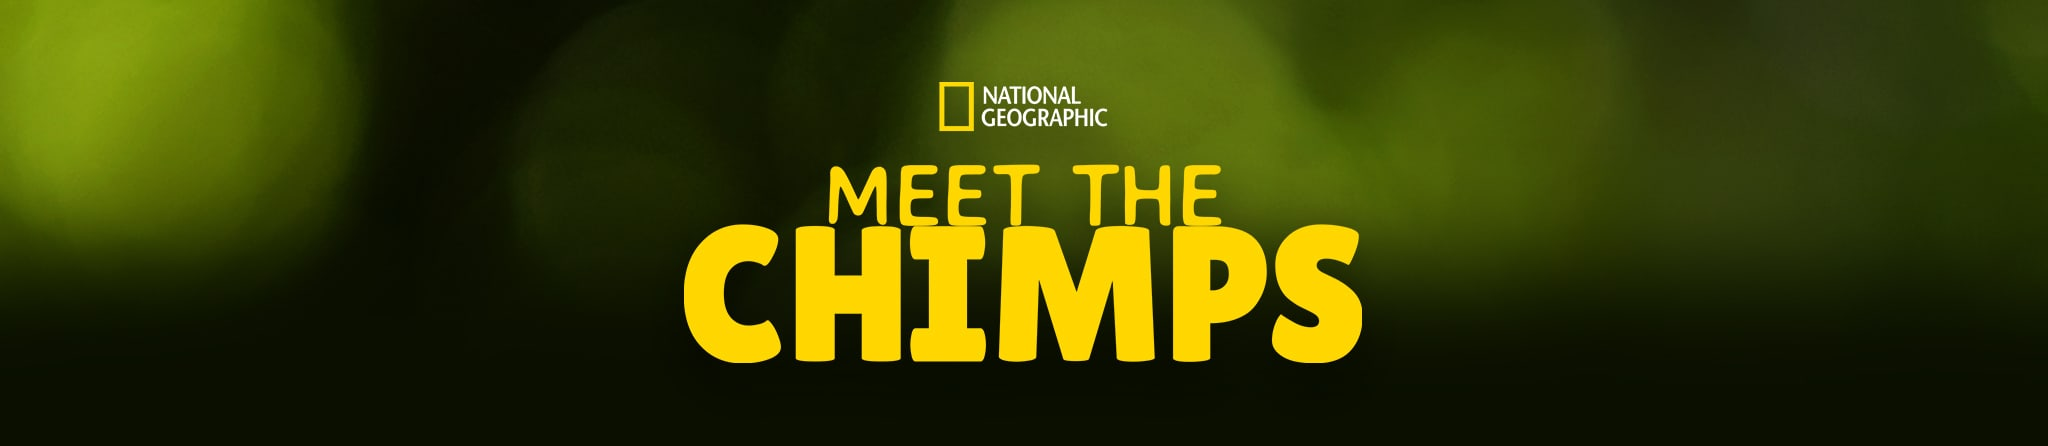 National Geographic | Meet the Chimps